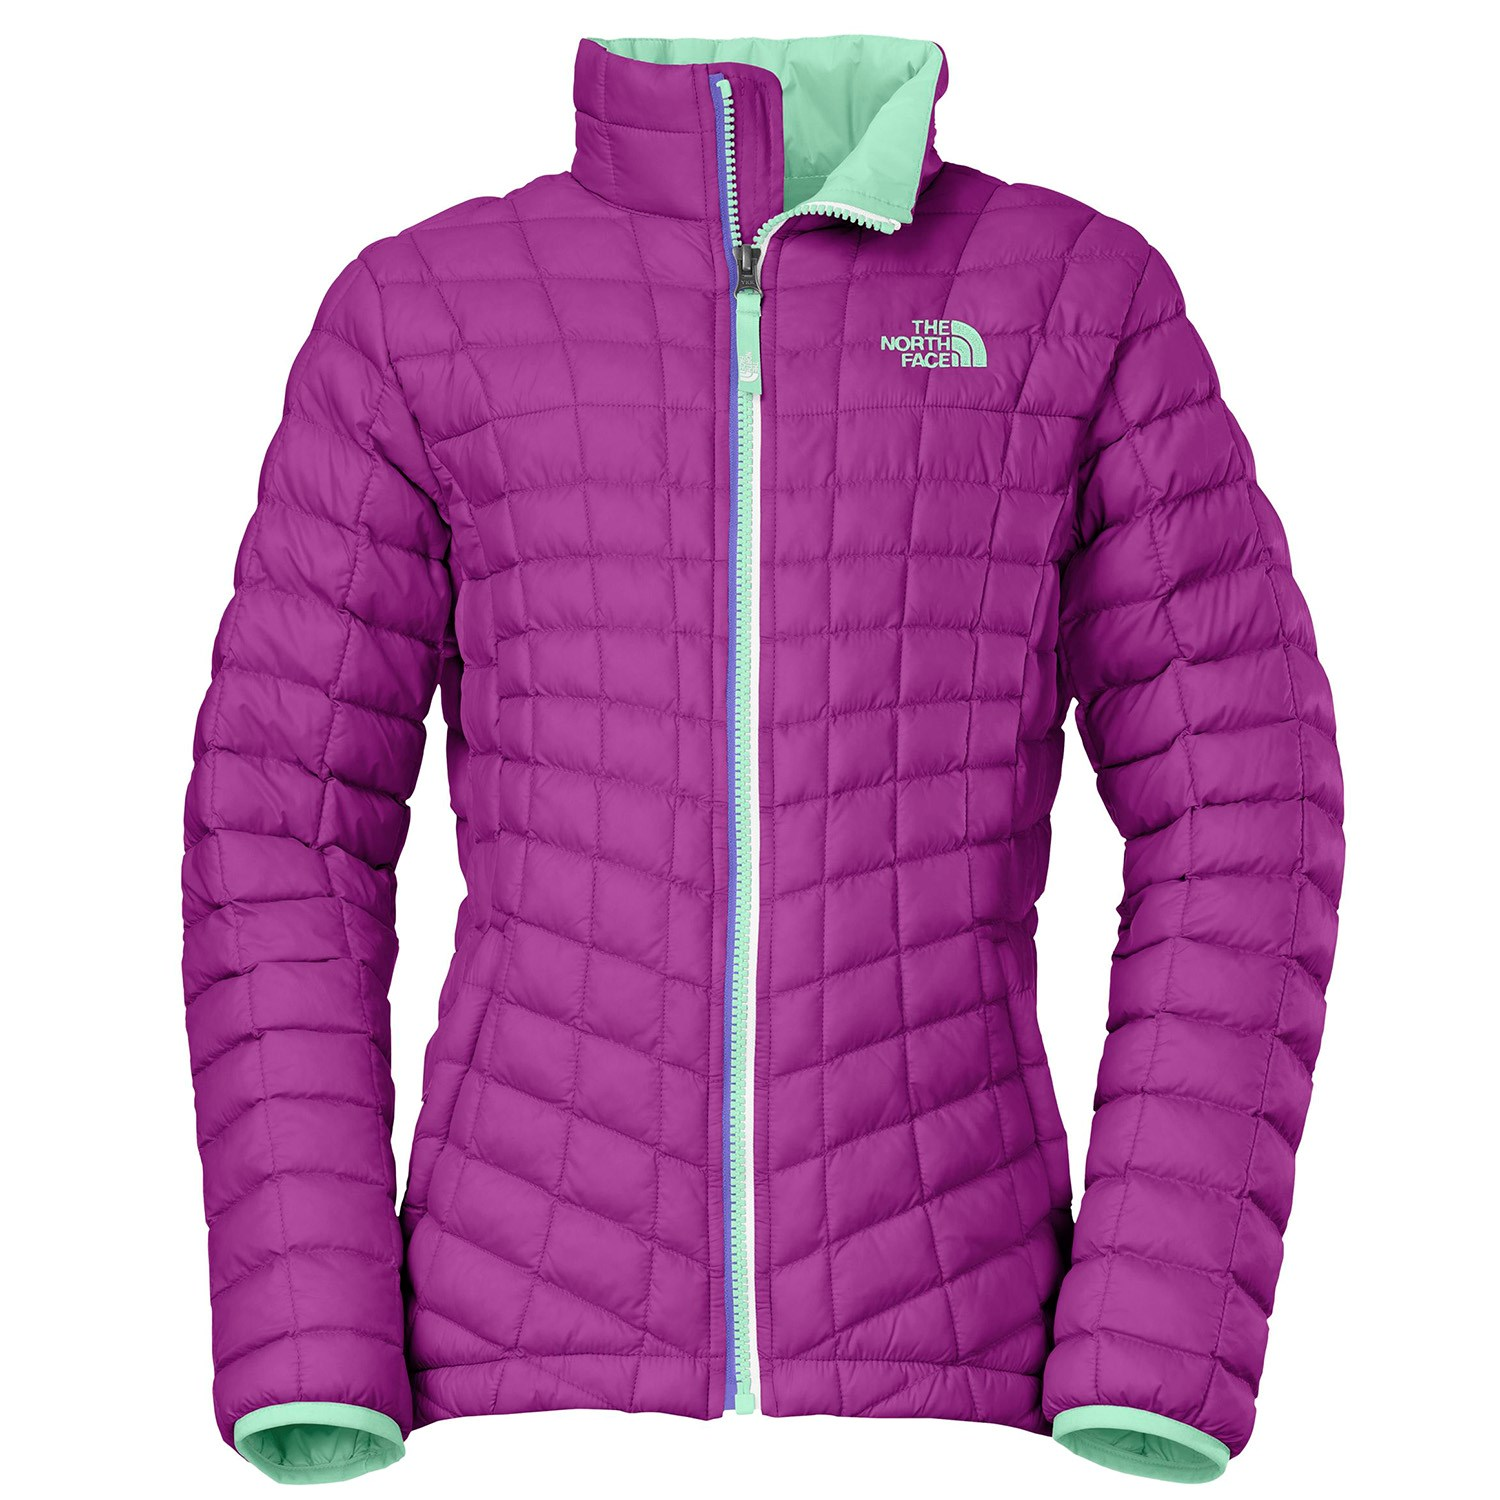 6ceb50a4e The North Face ThermoBall Full Zip Jacket - Girls' | evo